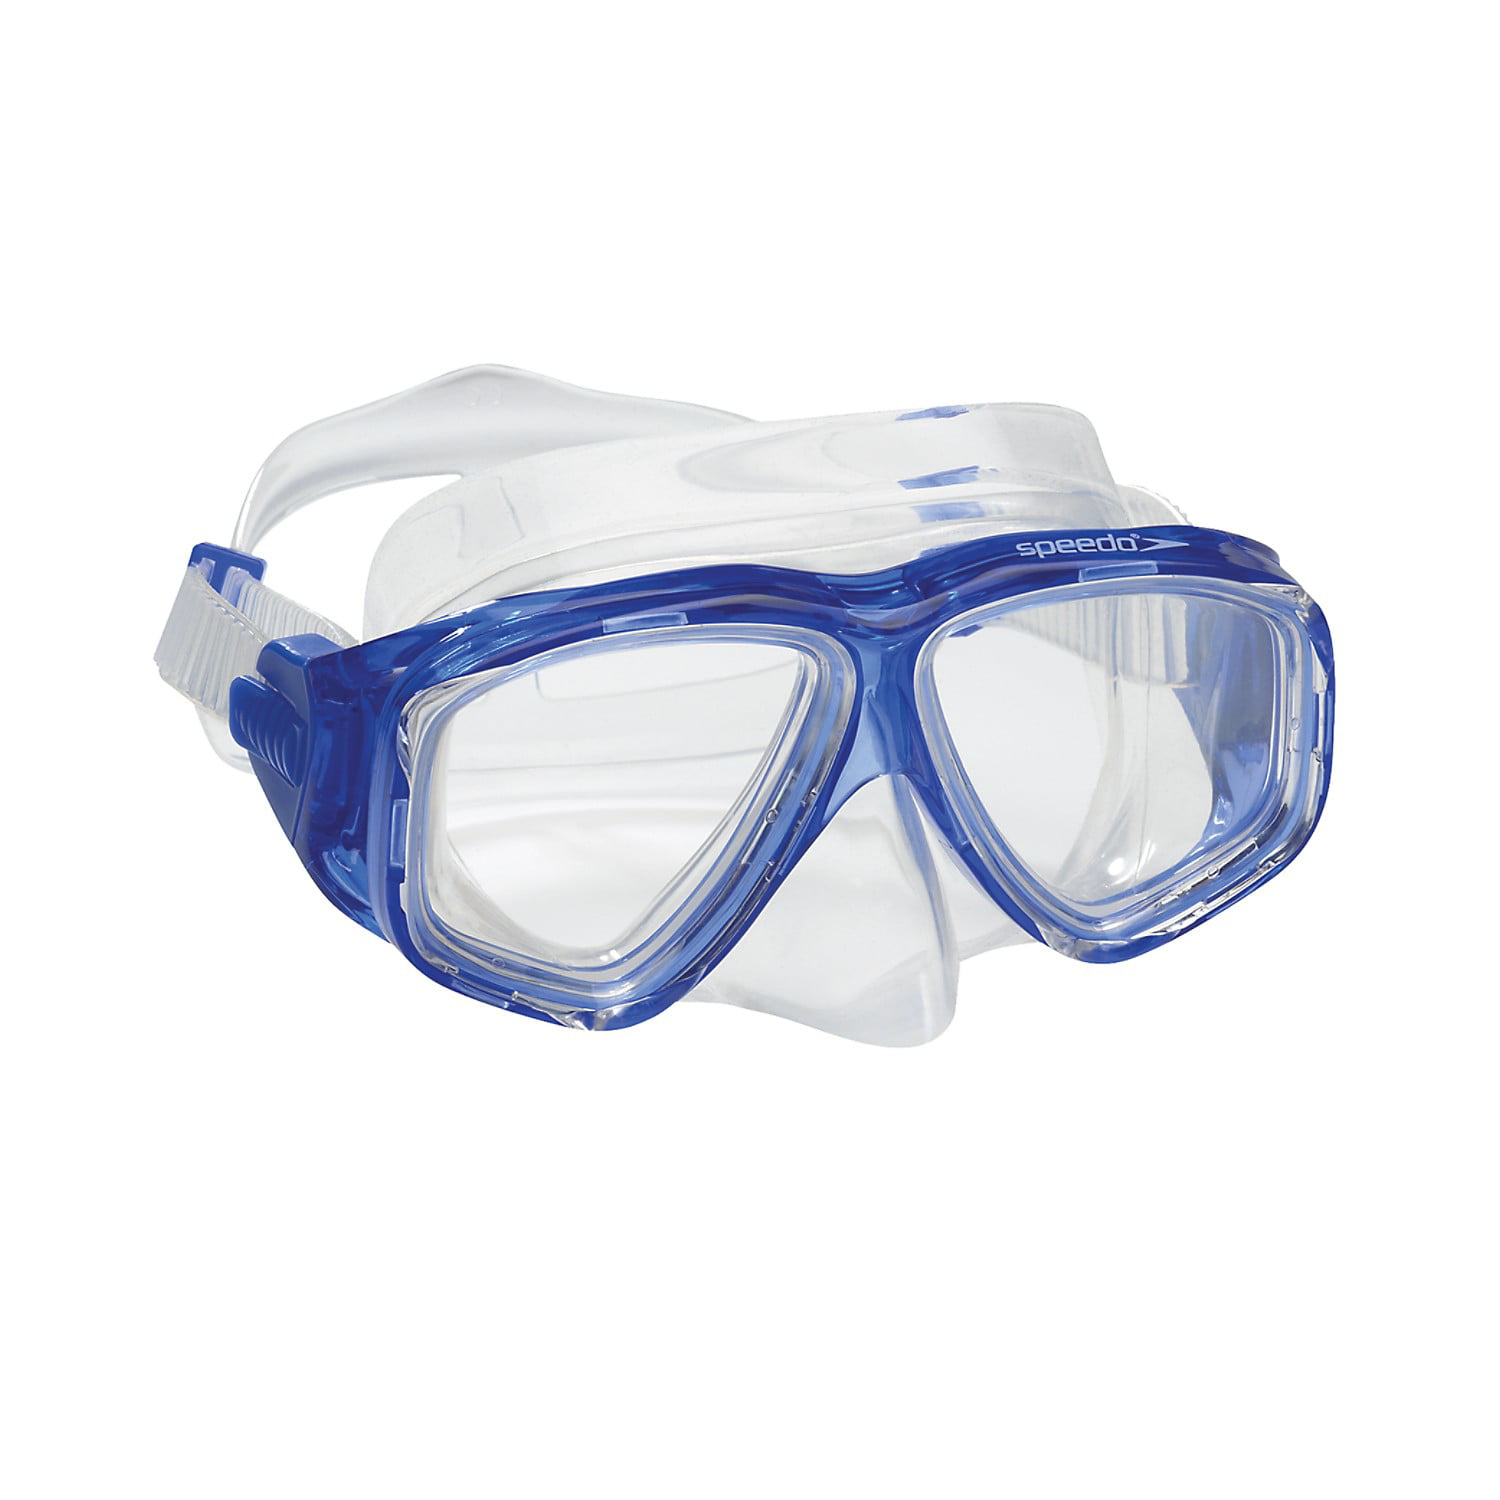 Speedo Swim Adult Recreation Dive Mask Snorkeling Swimming Goggles Blue by Speedo